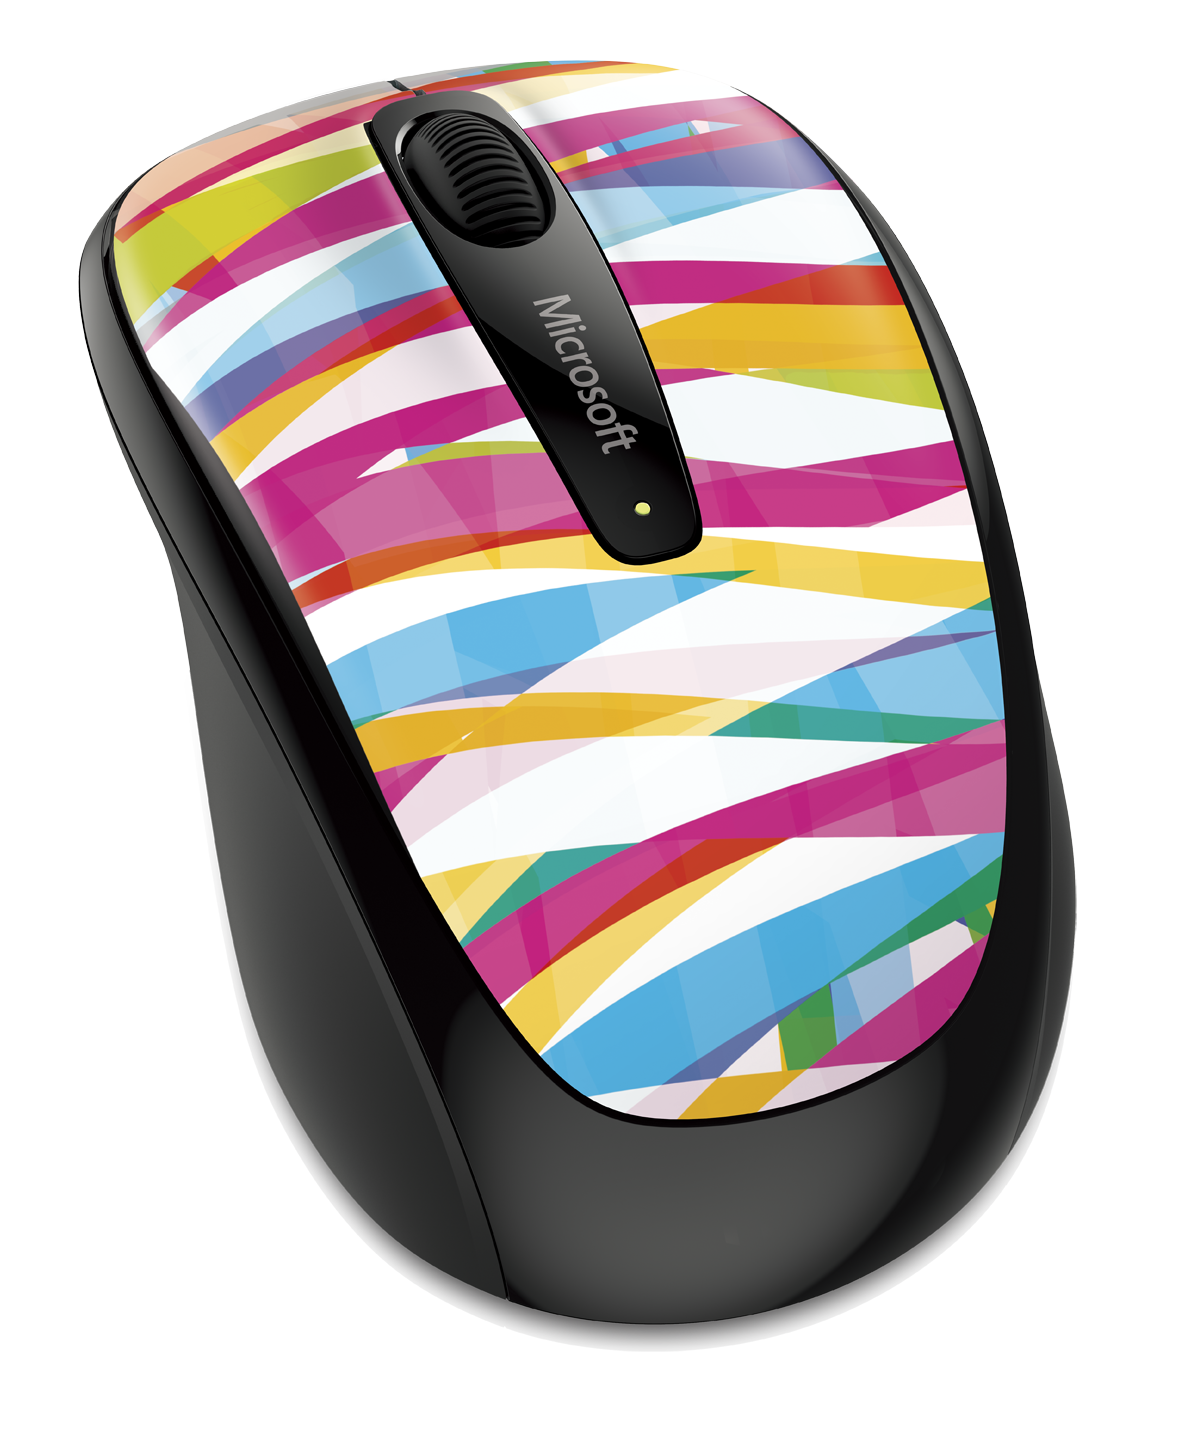 The new Microsoft Wireless Mobile Mouse 3500 Limited Edition is the latest way to accessorize your PC or tablet with gorgeous, textured designs to fit your style, now available with optional matching M-Edge tablet sleeves.